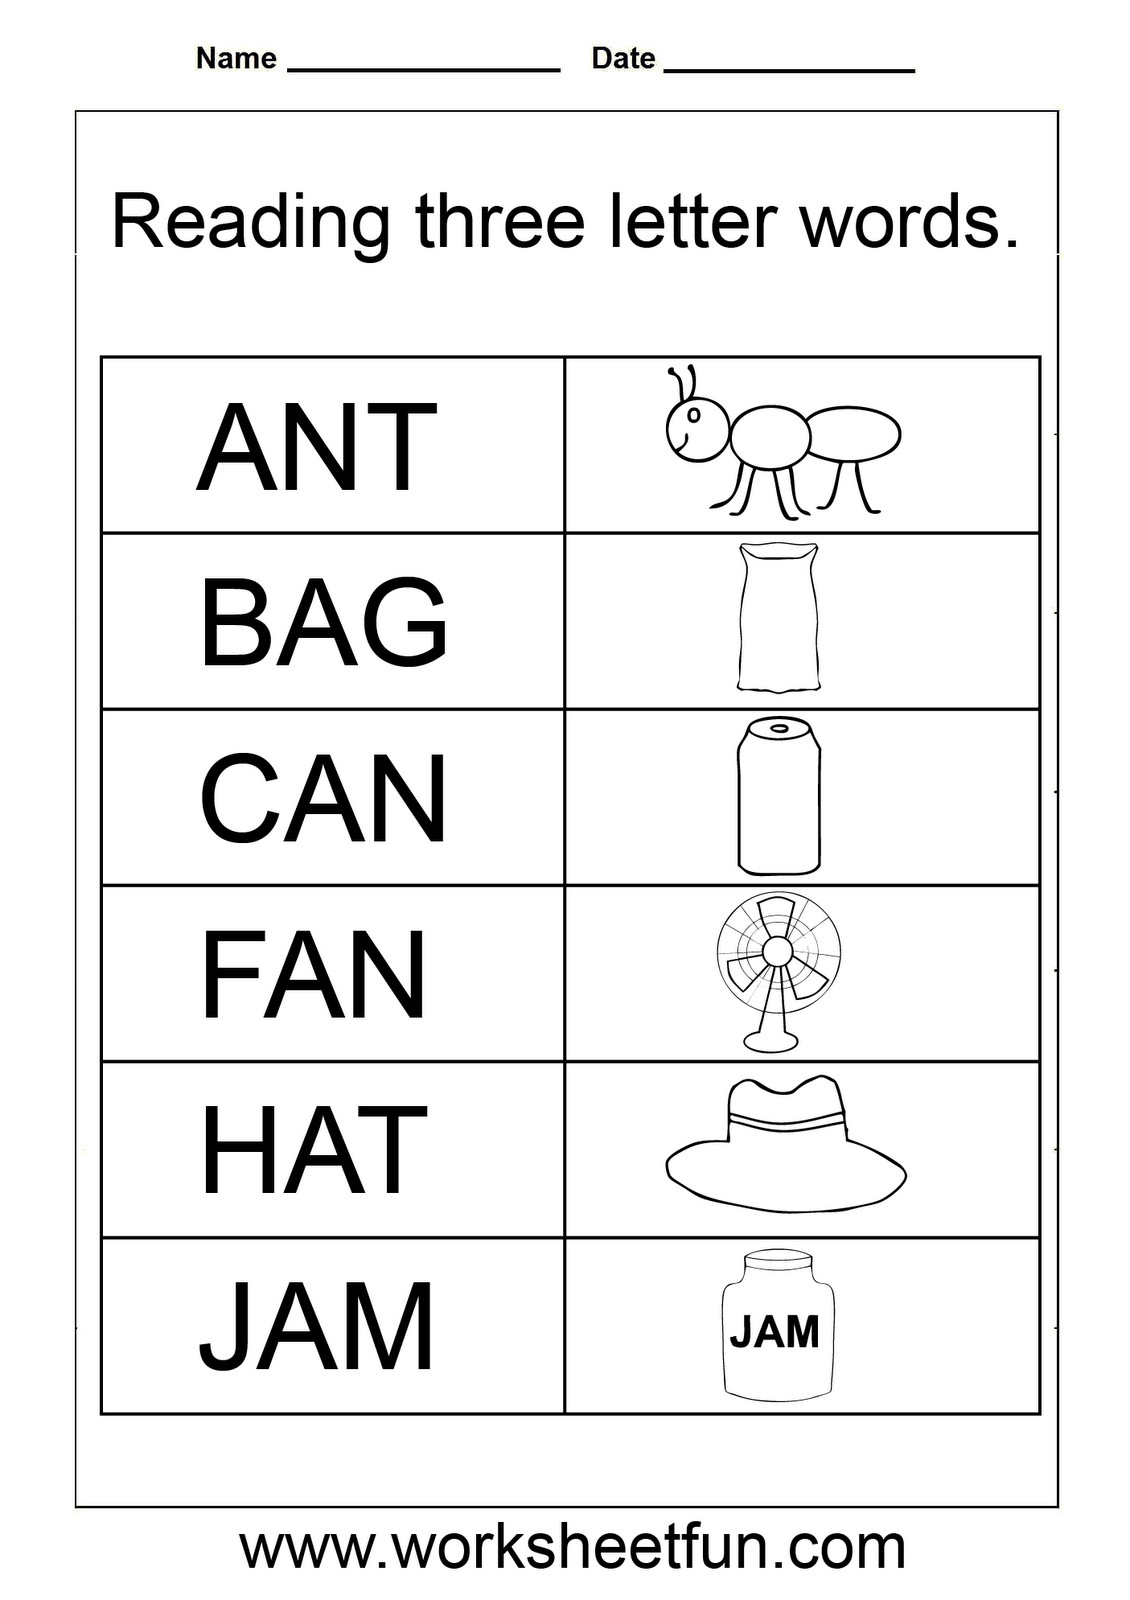 Kindergarten Spelling Words Printable 3 Letter Words Worksheets for Kindergarten